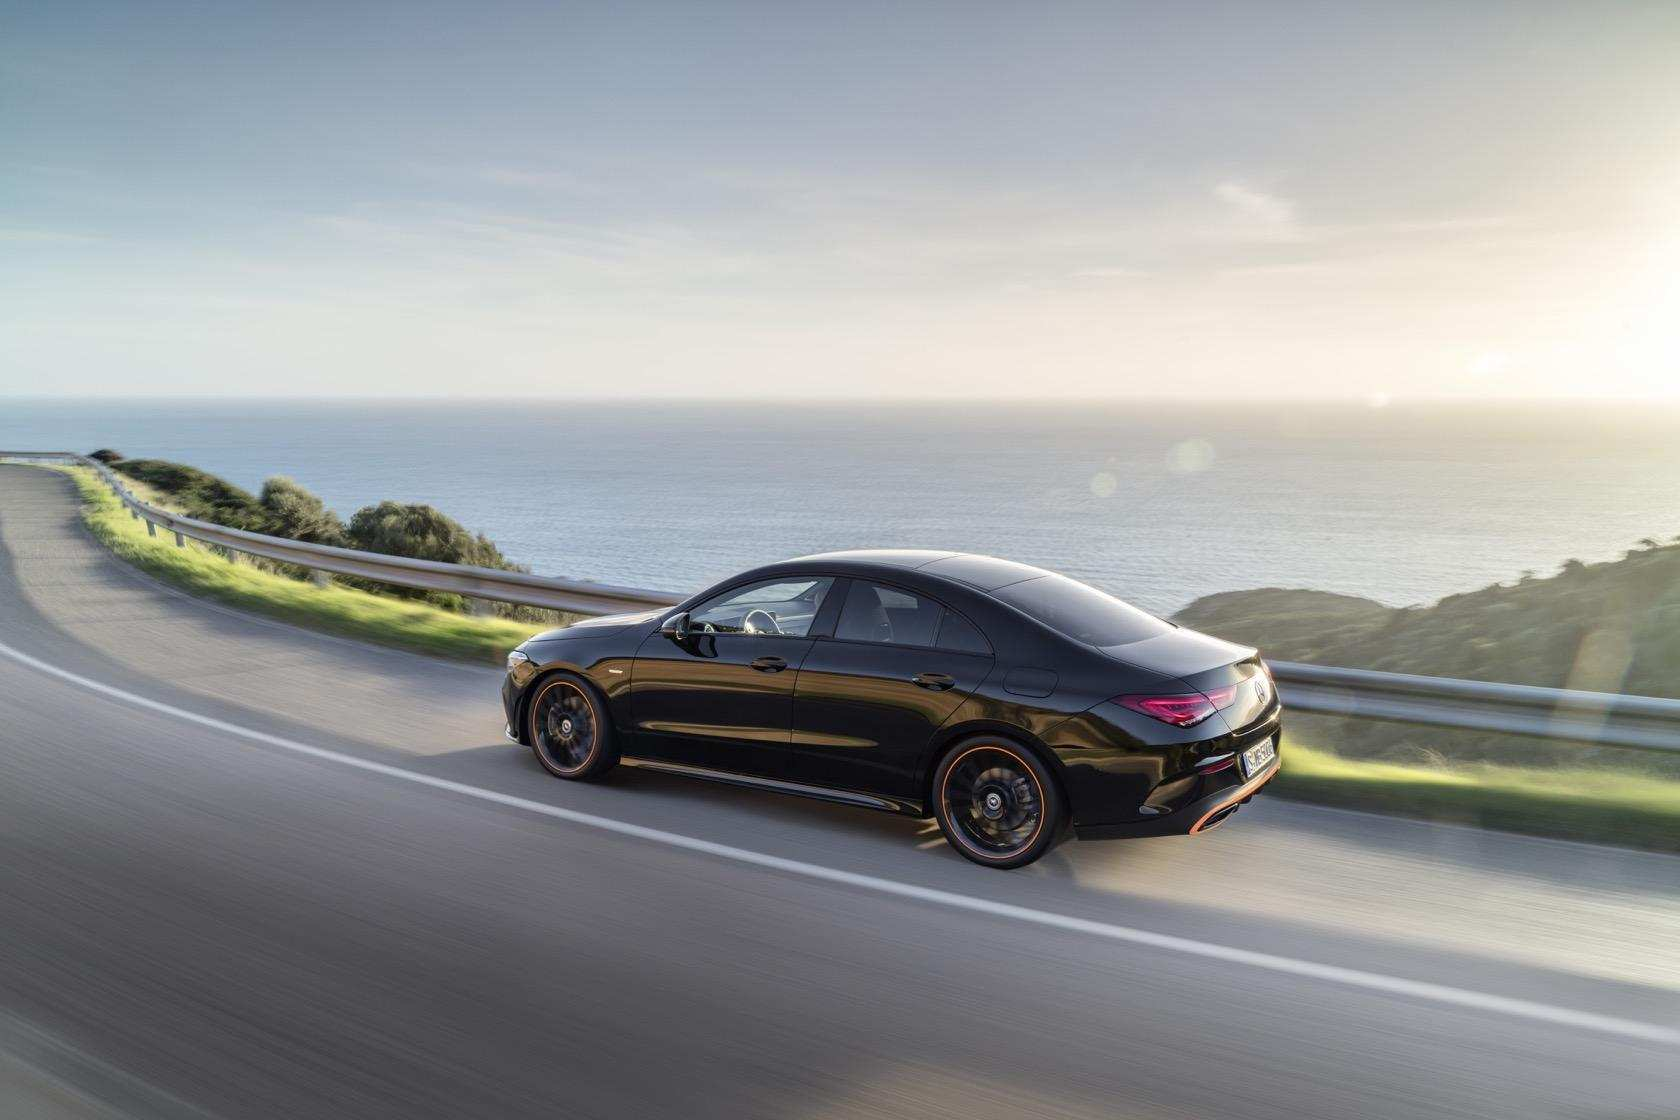 82 The Best 2020 Mercedes CLA 250 Concept And Review